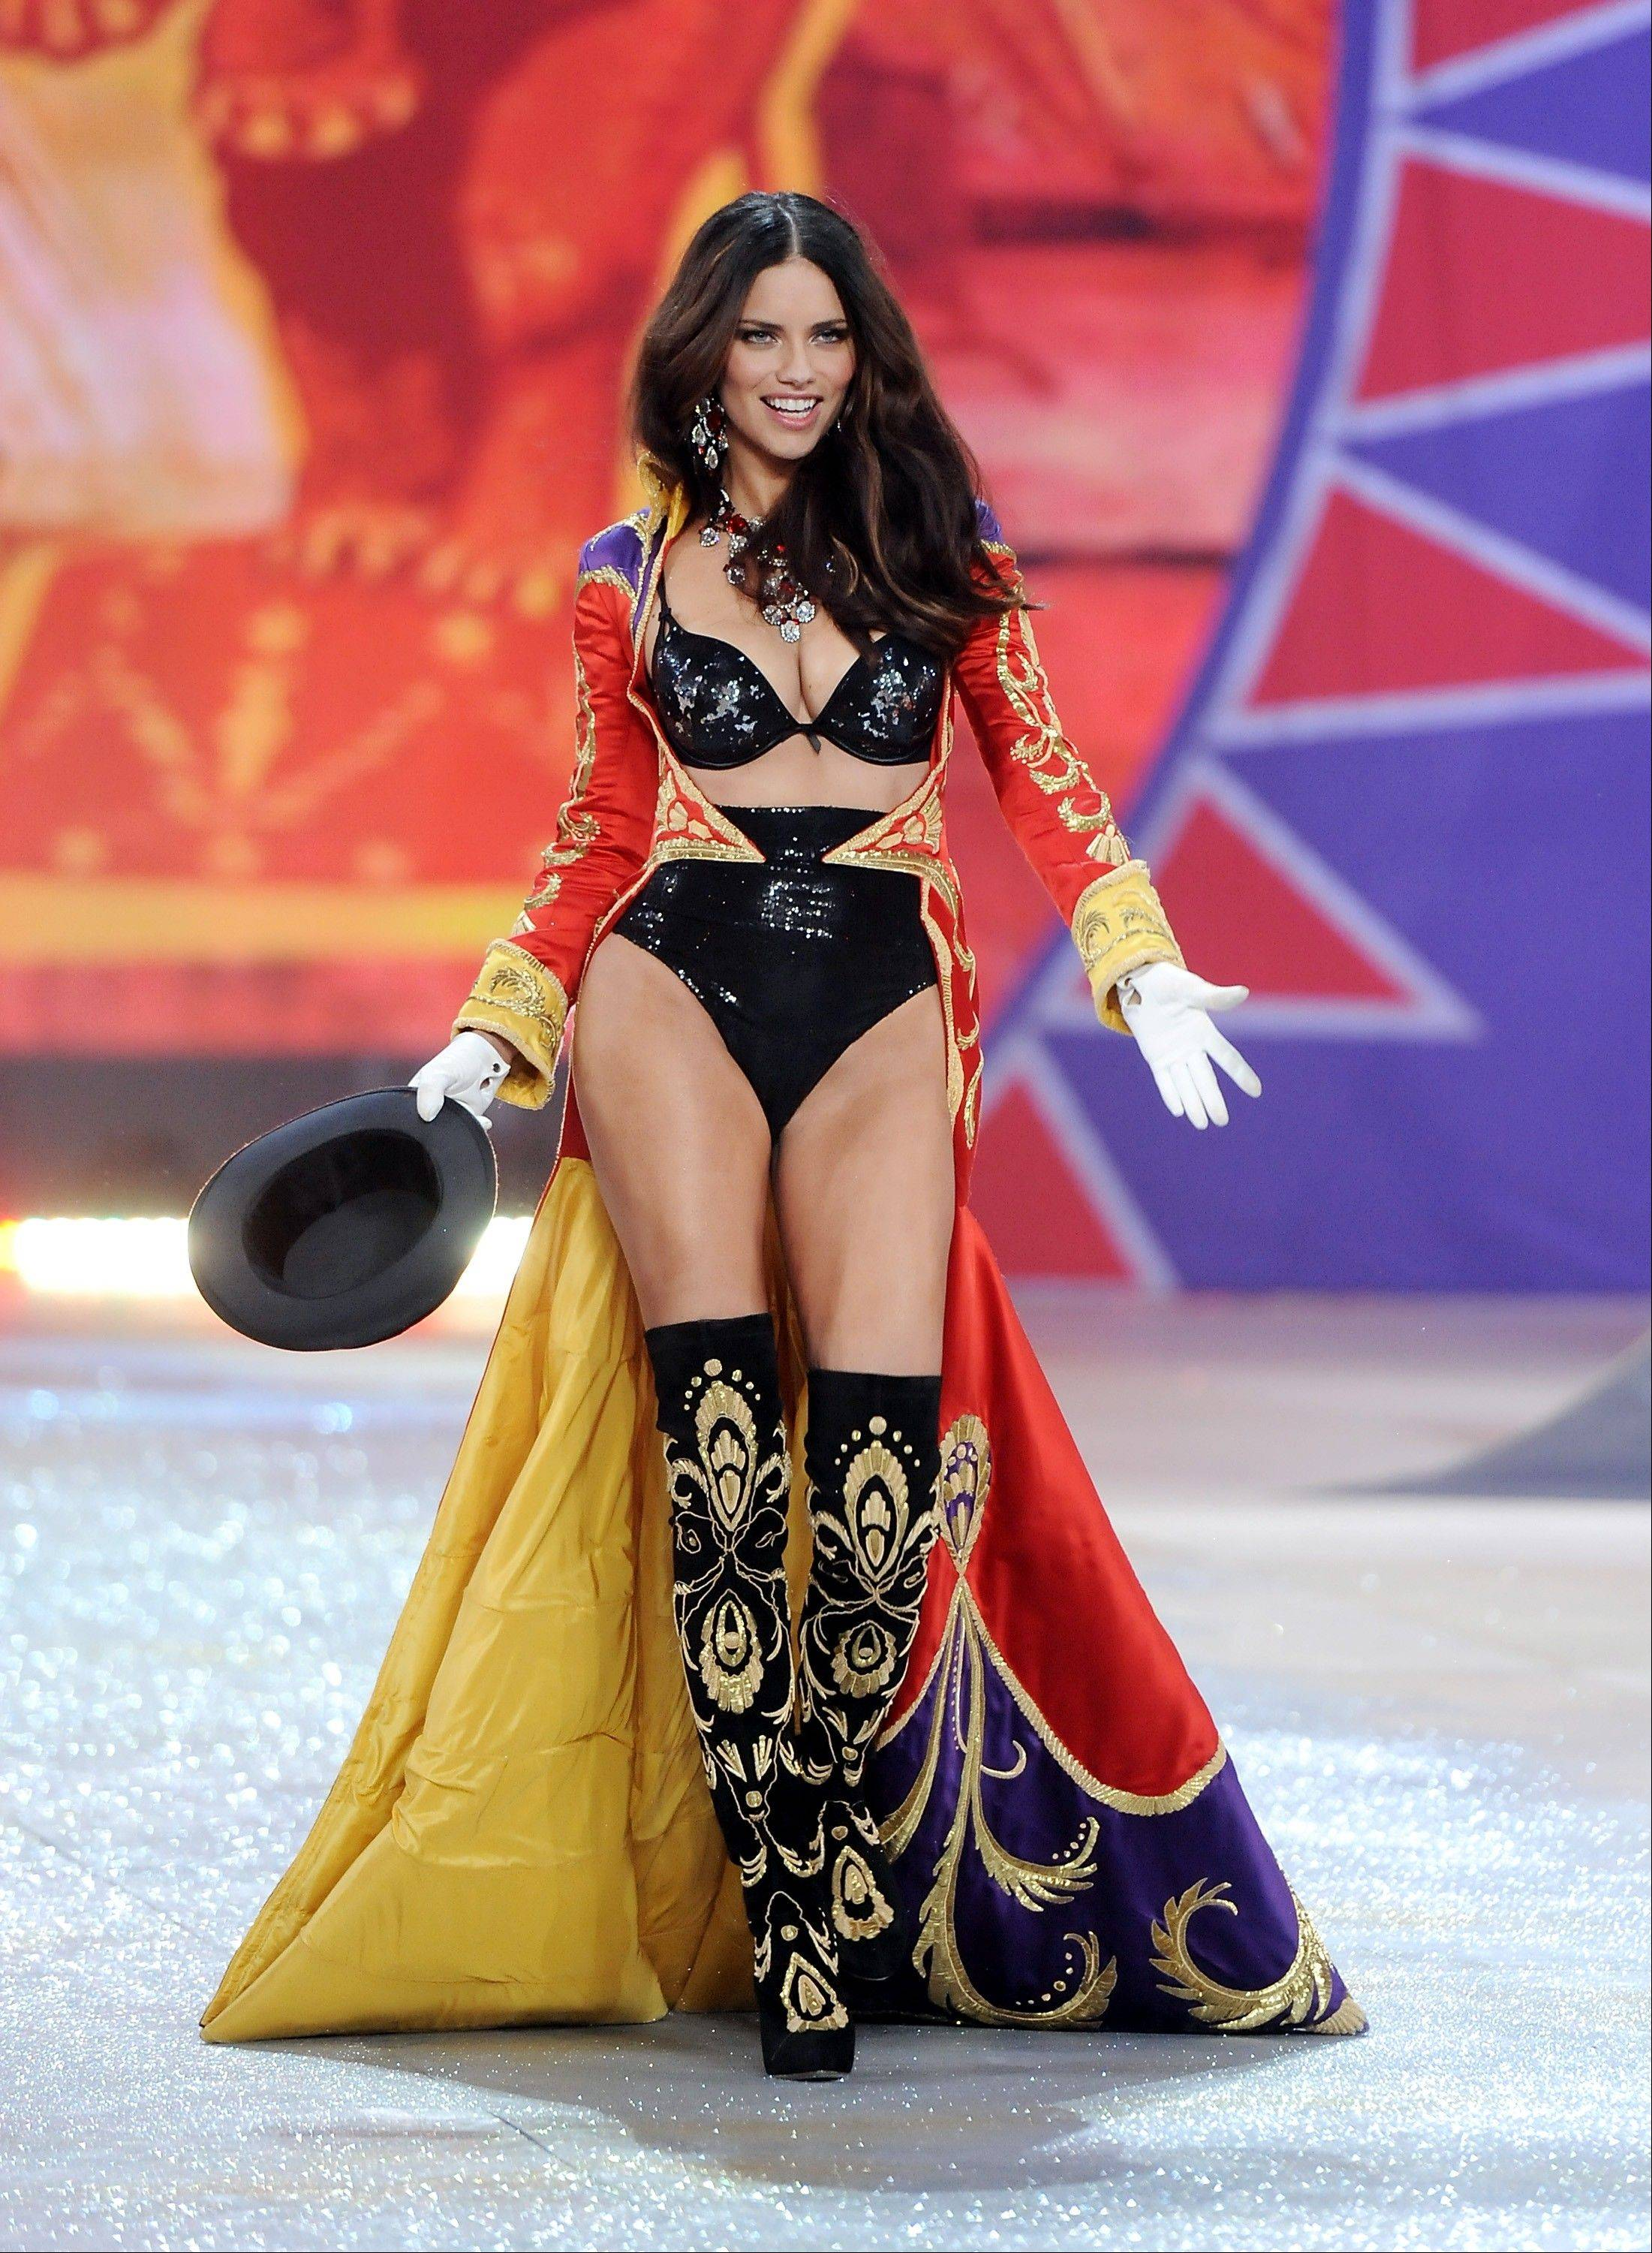 Brazilian model Adriana Lima walks on the runway during the 2012 Victoria's Secret Fashion Show.